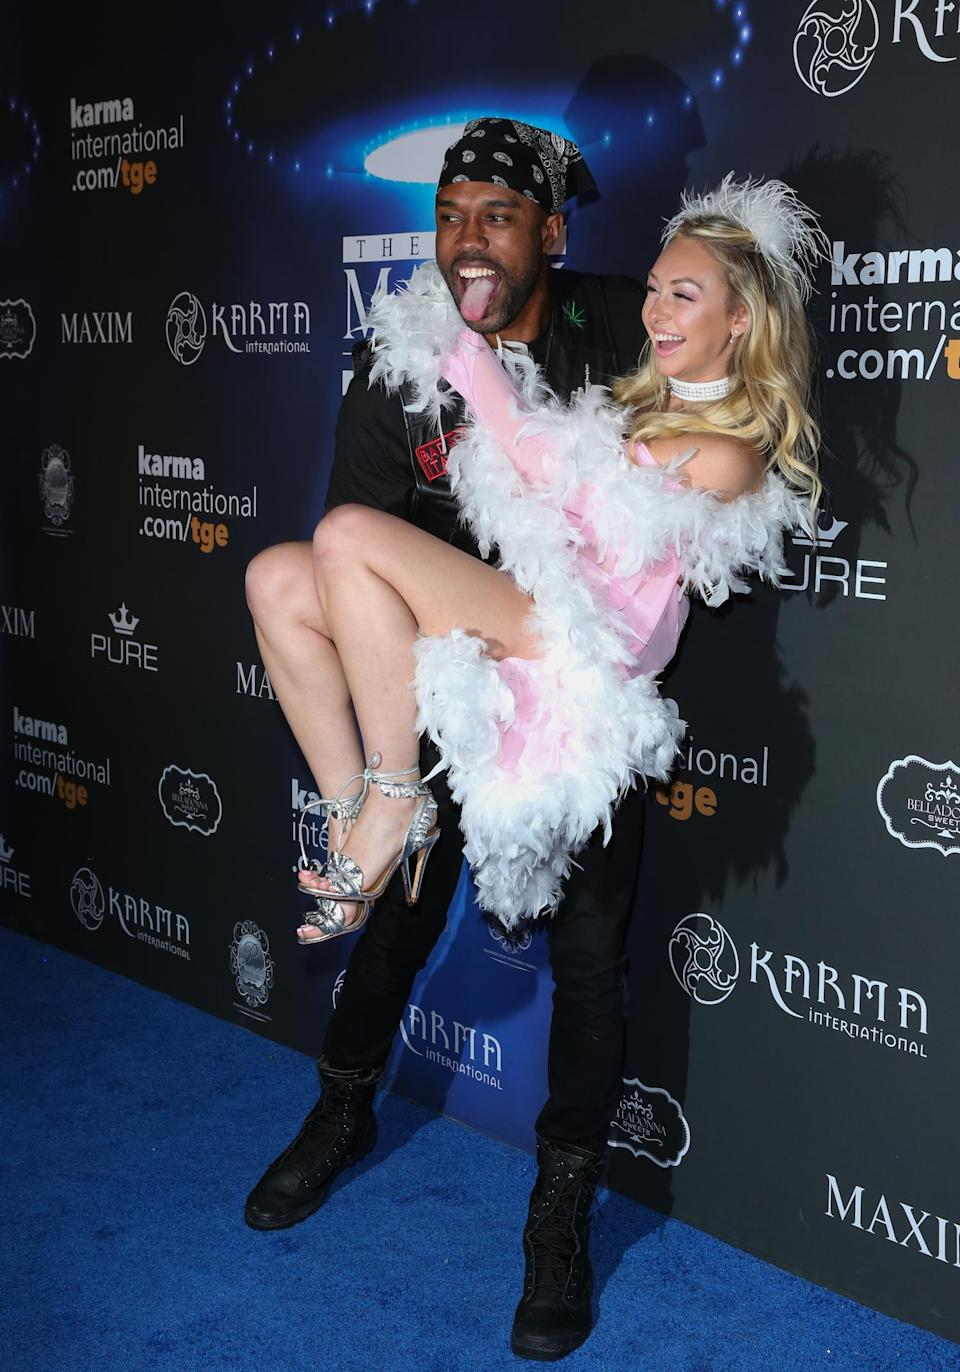 <p><em>Bachelor in Paradise</em>'s DeMario and Corinne partied the night away together at the Maxim Halloween party. In case you didn't you know, they're friends again. (Photo: Getty Images) </p>